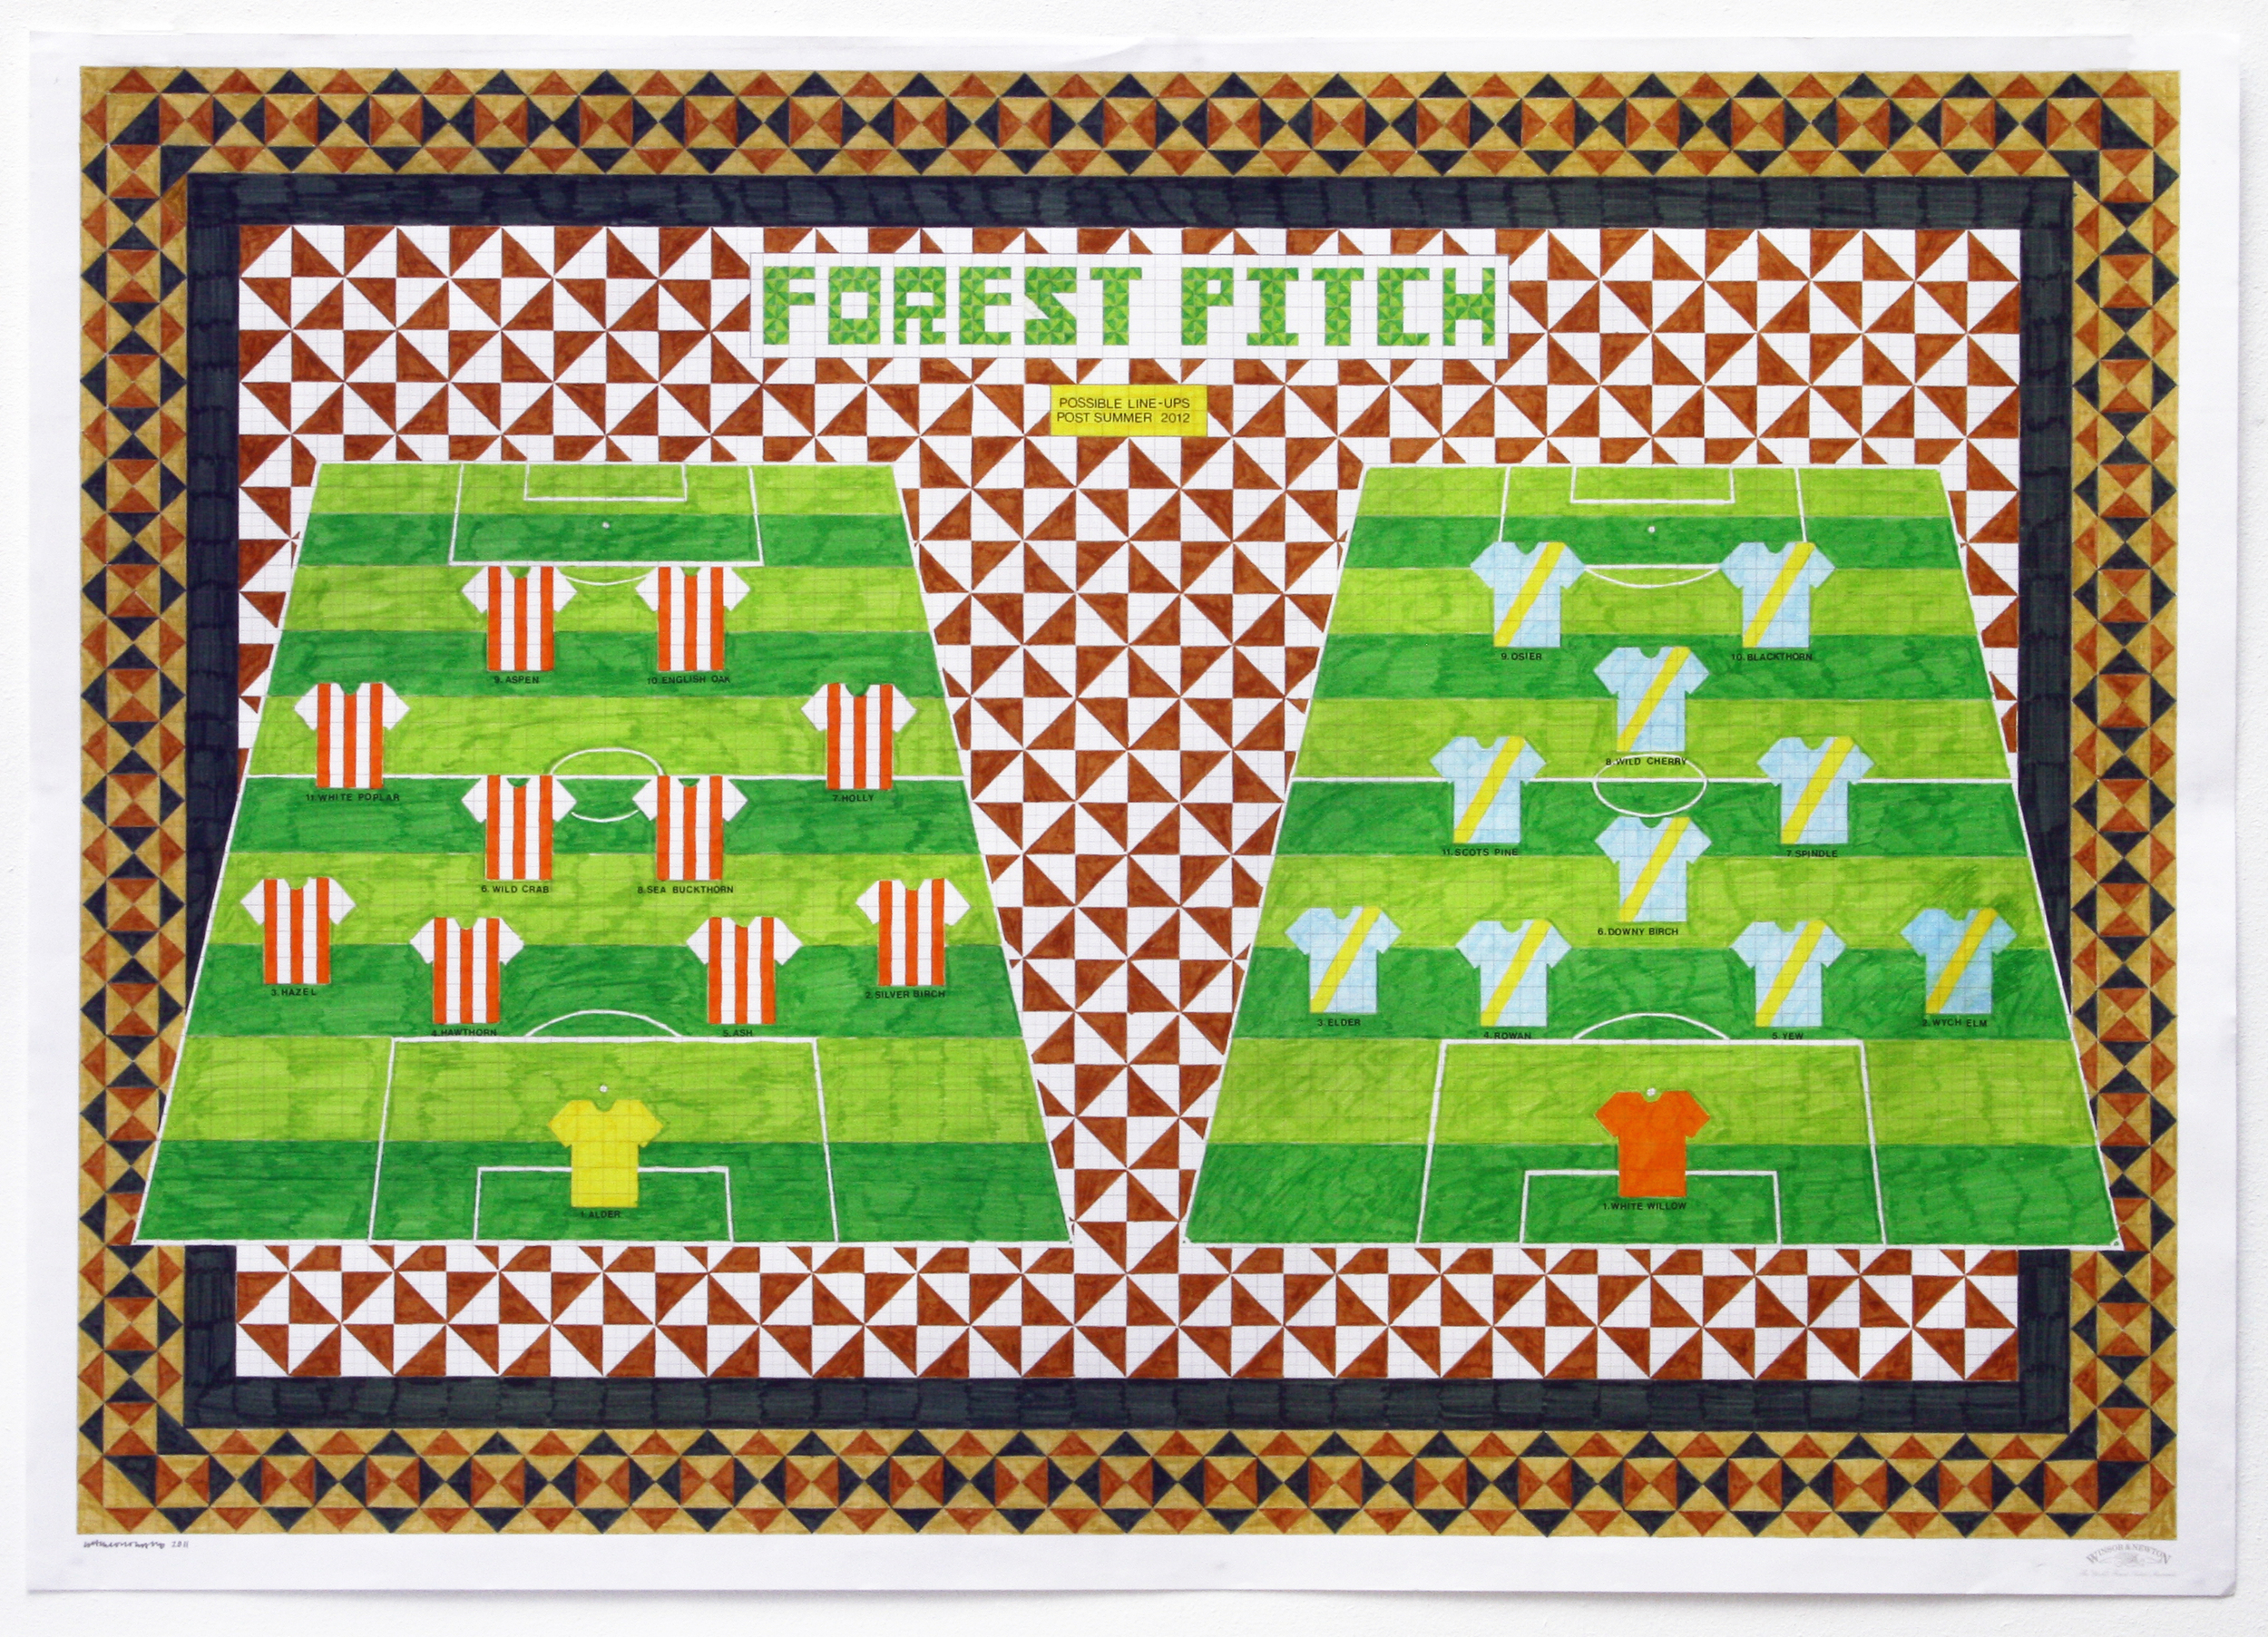 Forest Pitch Formation (2011)